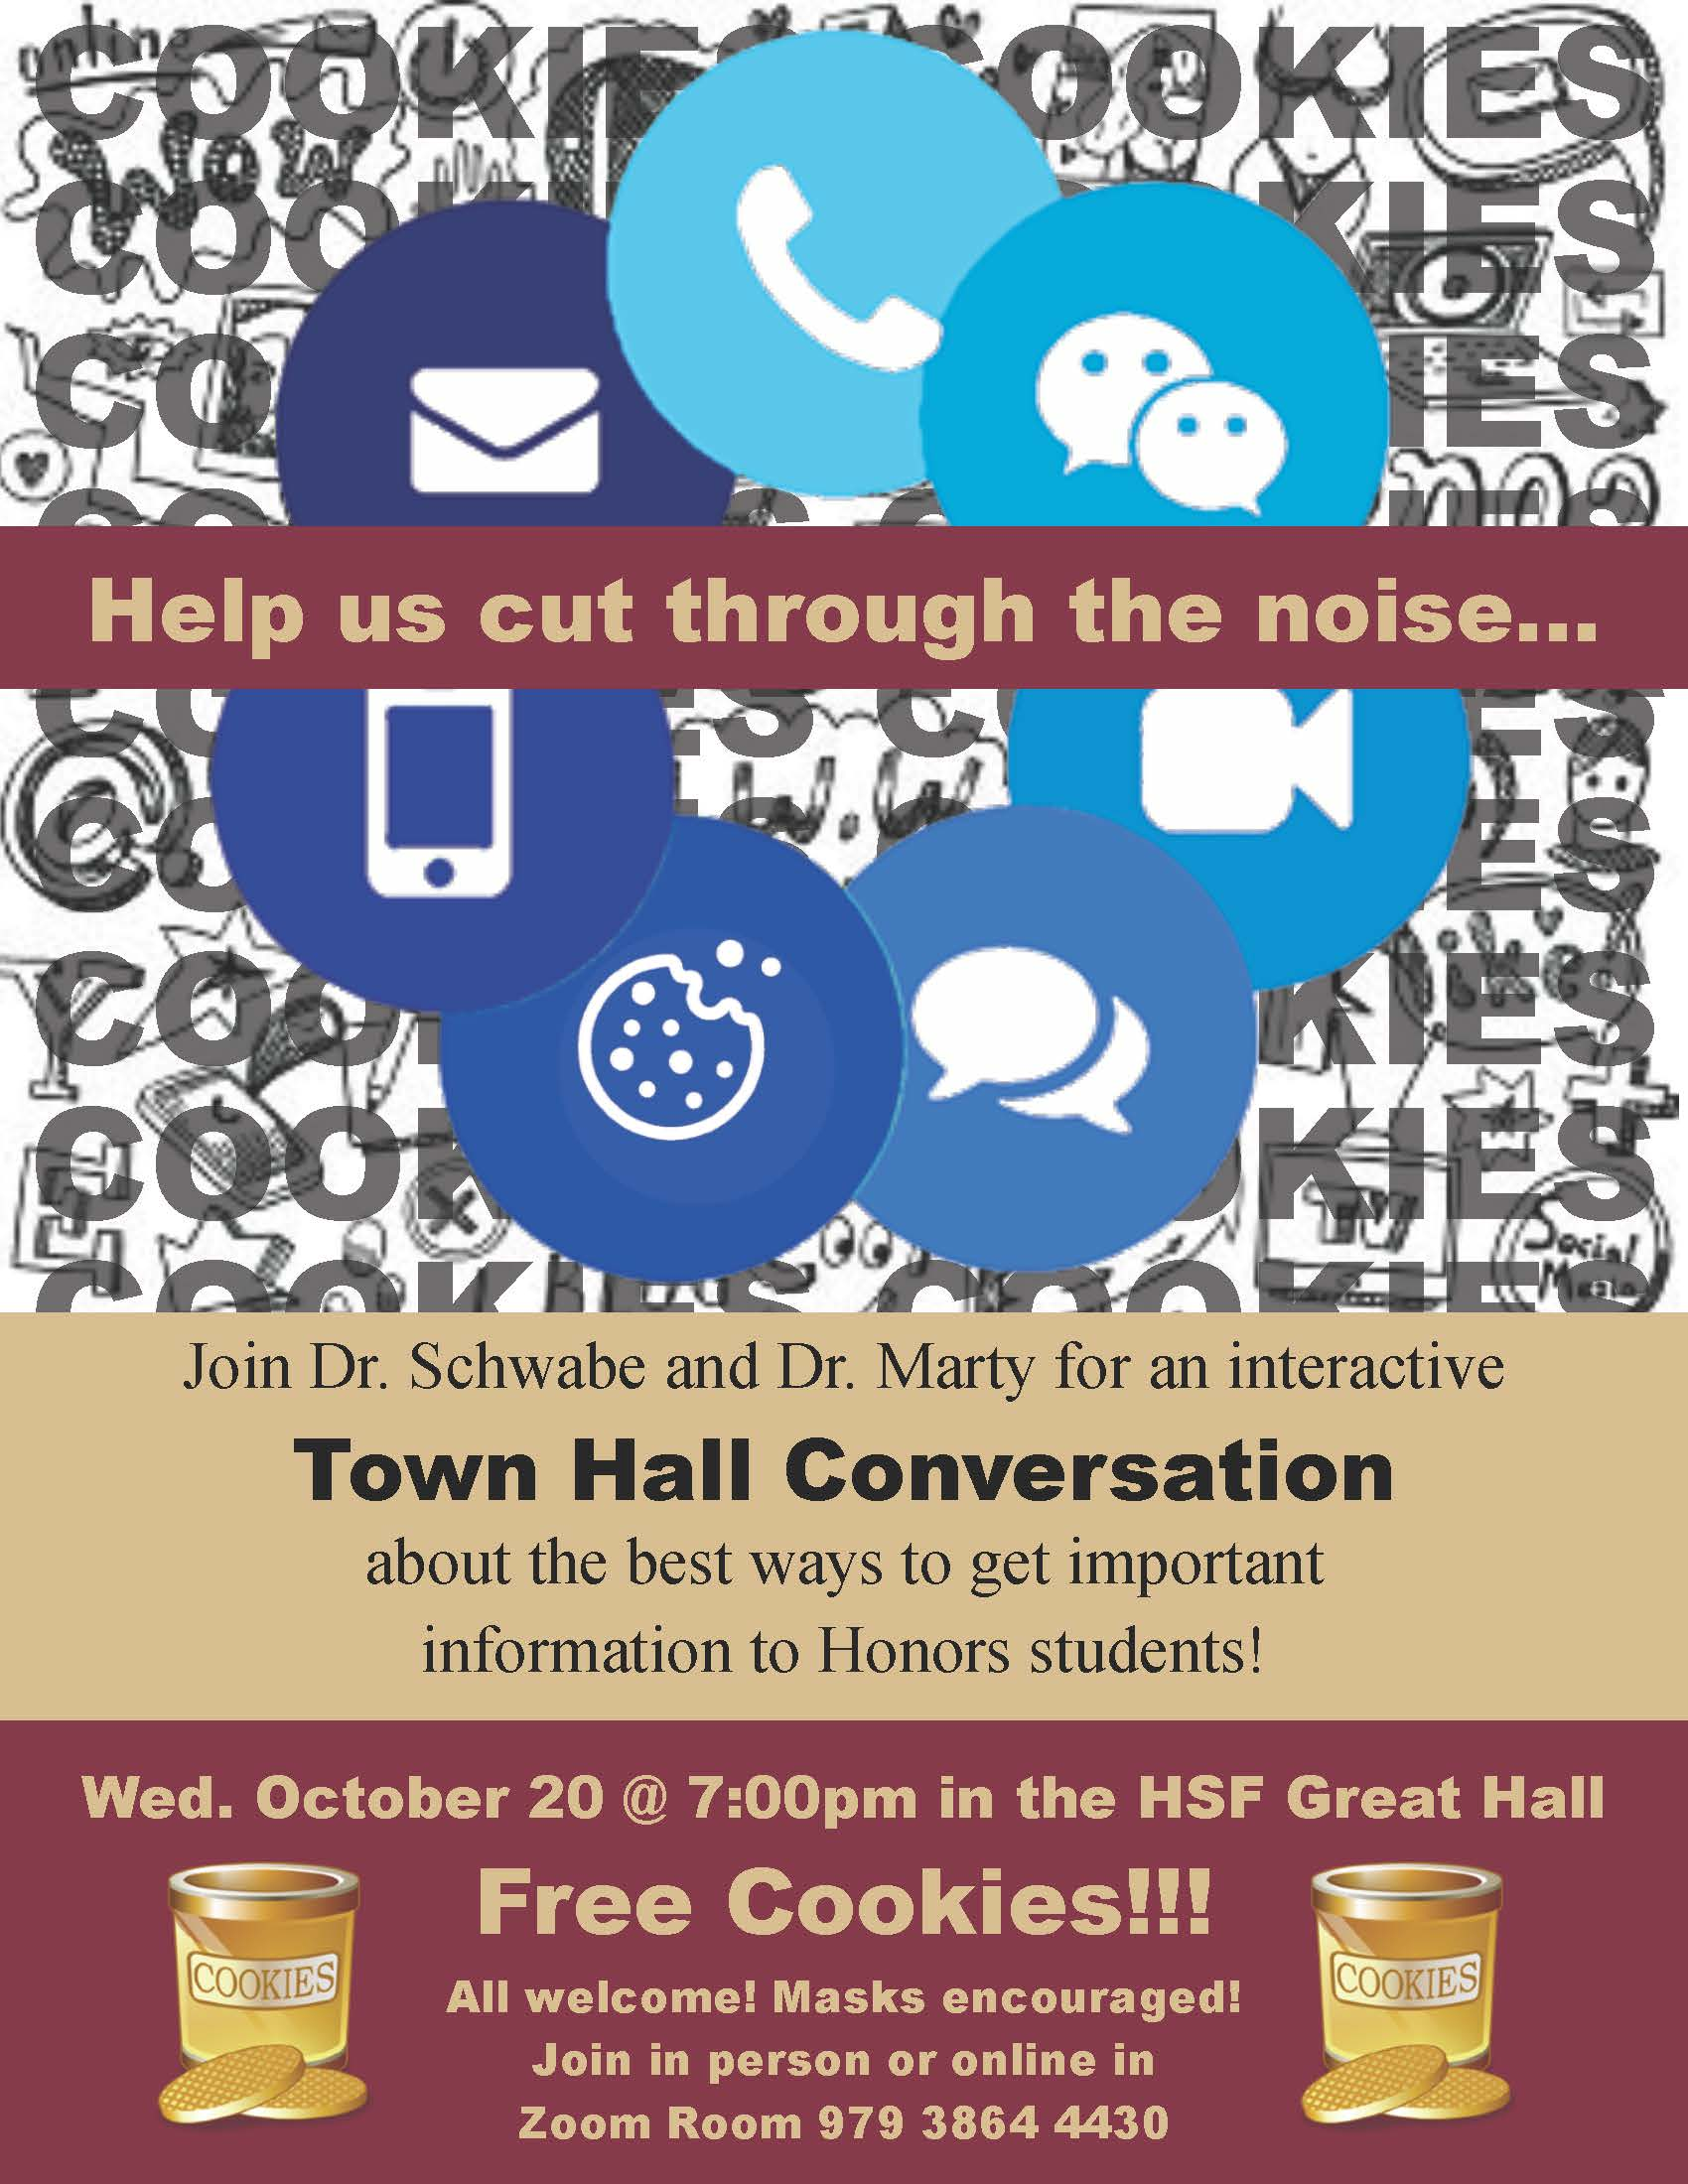 Honors Tech Town Hall Conversation. Join Dr. Schwabe and Dr. Marty for an interactive Town Hall discussion about the best ways to get important information to Honors students. Wednesday, October 20, 2021 at 7:00 p.m. in the Honors, Scholars, and Fellows House, 4th Floor, Great Hall. In person and via Zoom Room (ID: 979 3864 4430) All Welcome! Masks encouraged! Free Cookies!